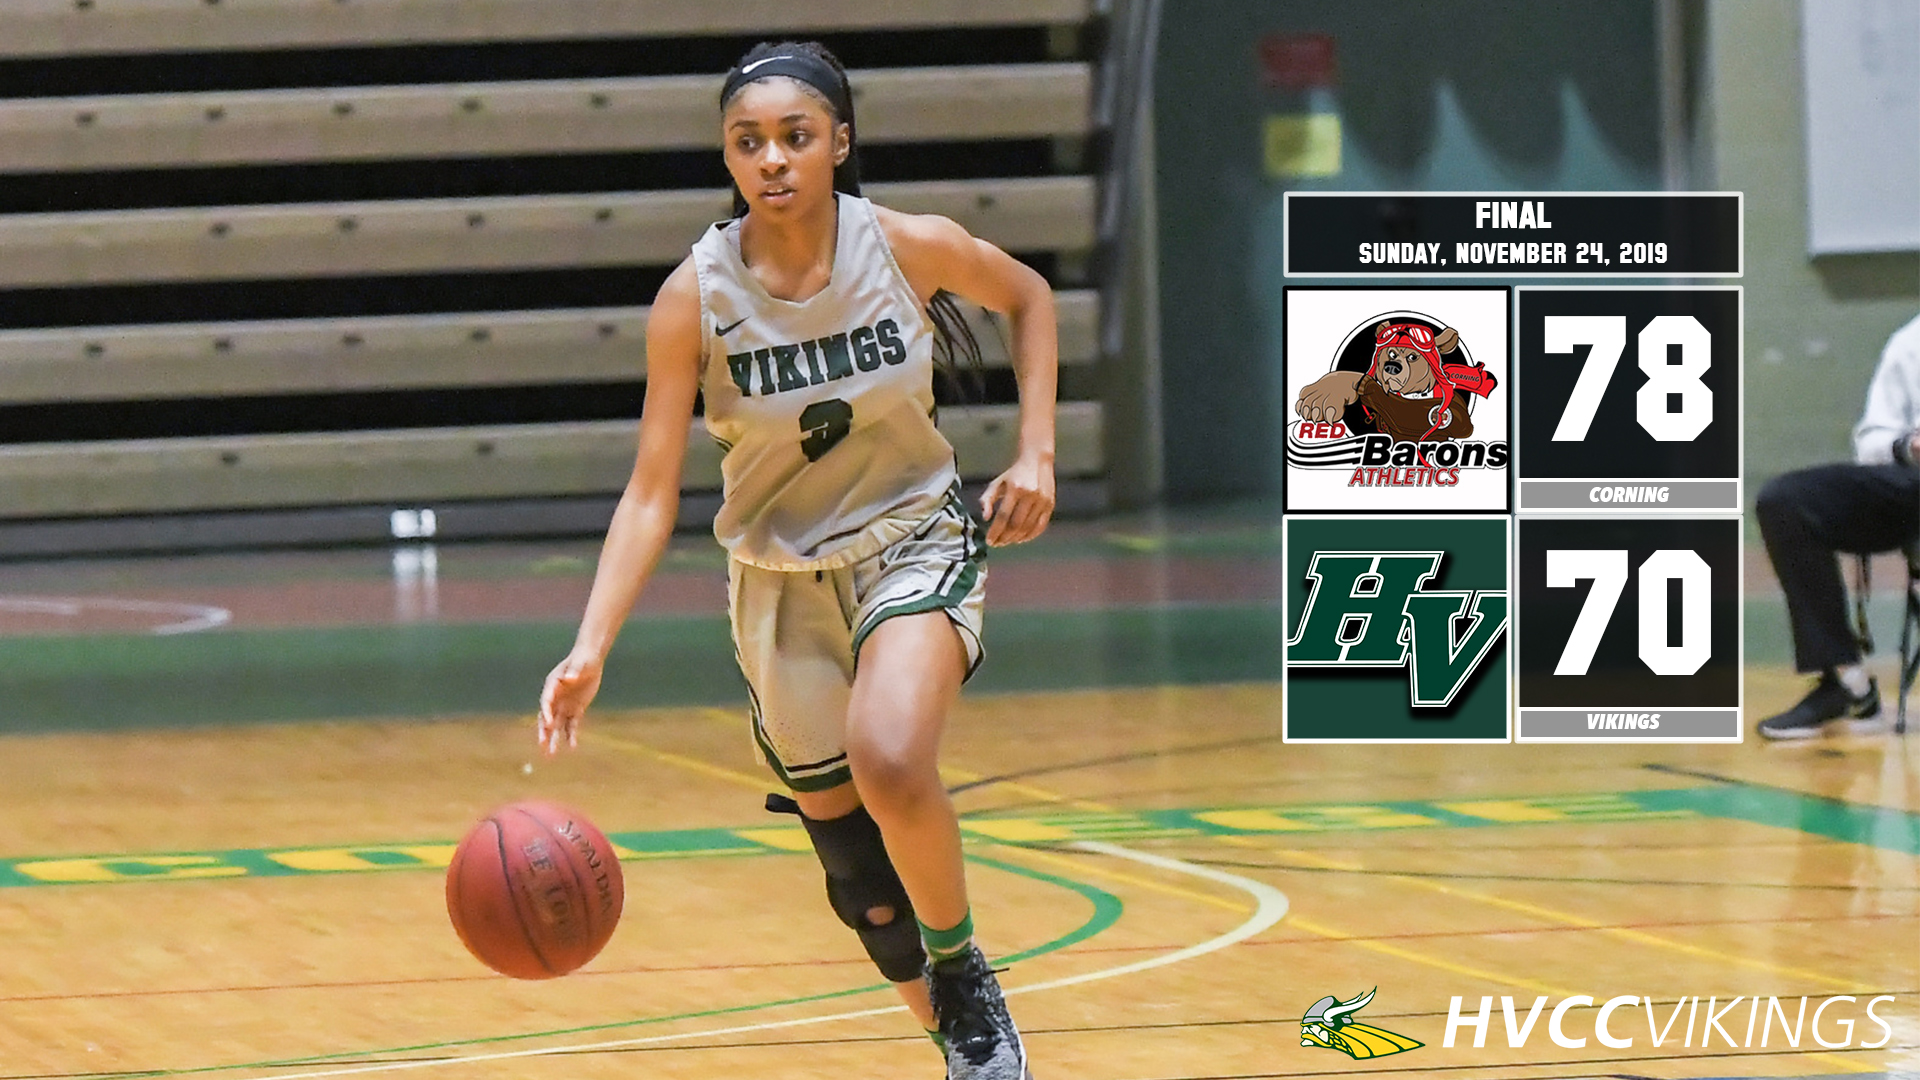 Women's basketball lost 78-70 to Corning on Nov. 24, 2019